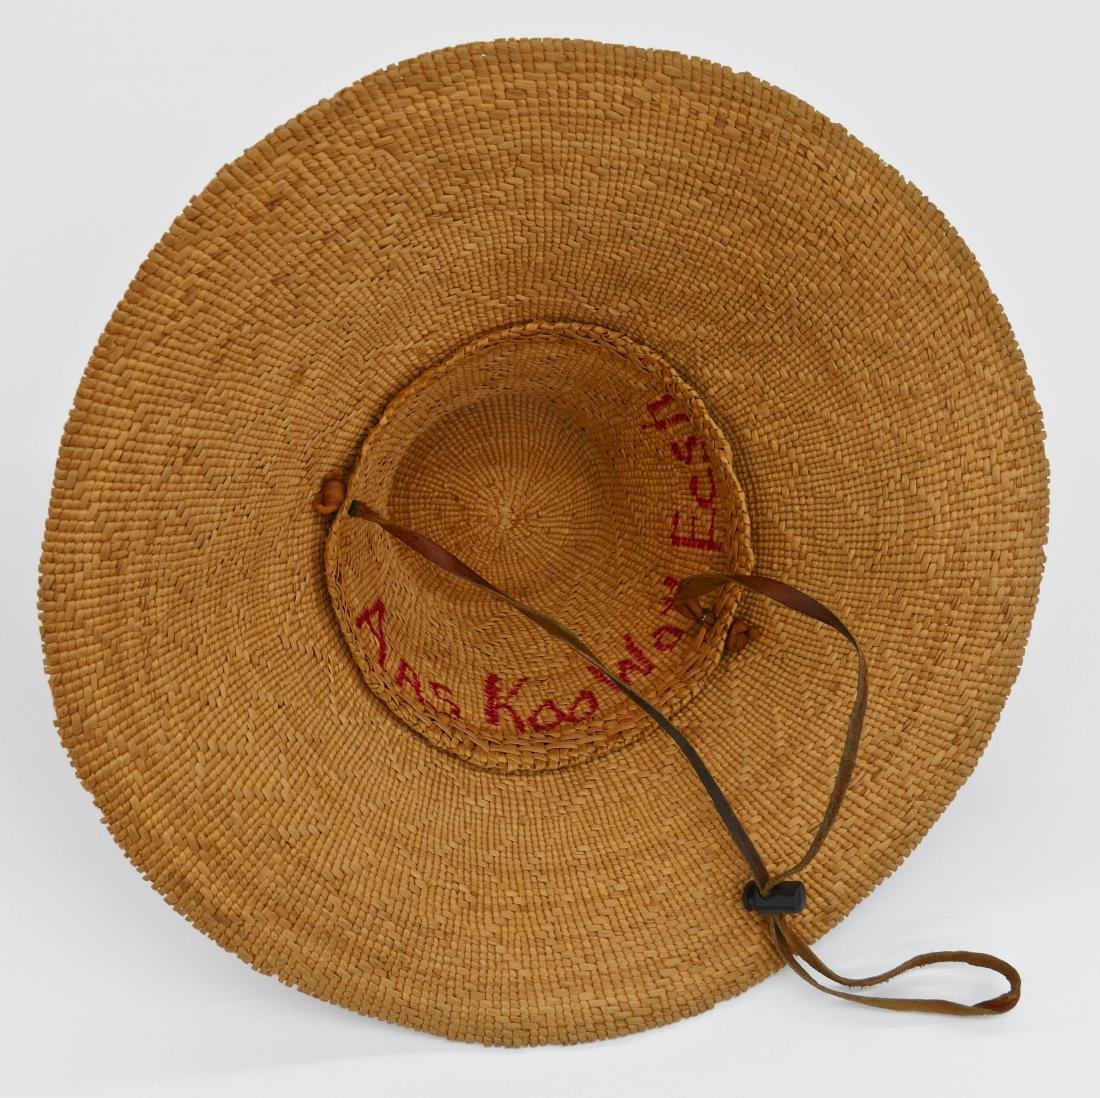 Haida Spruce Root Basketry Hat 5''x15''. Finely woven - 3